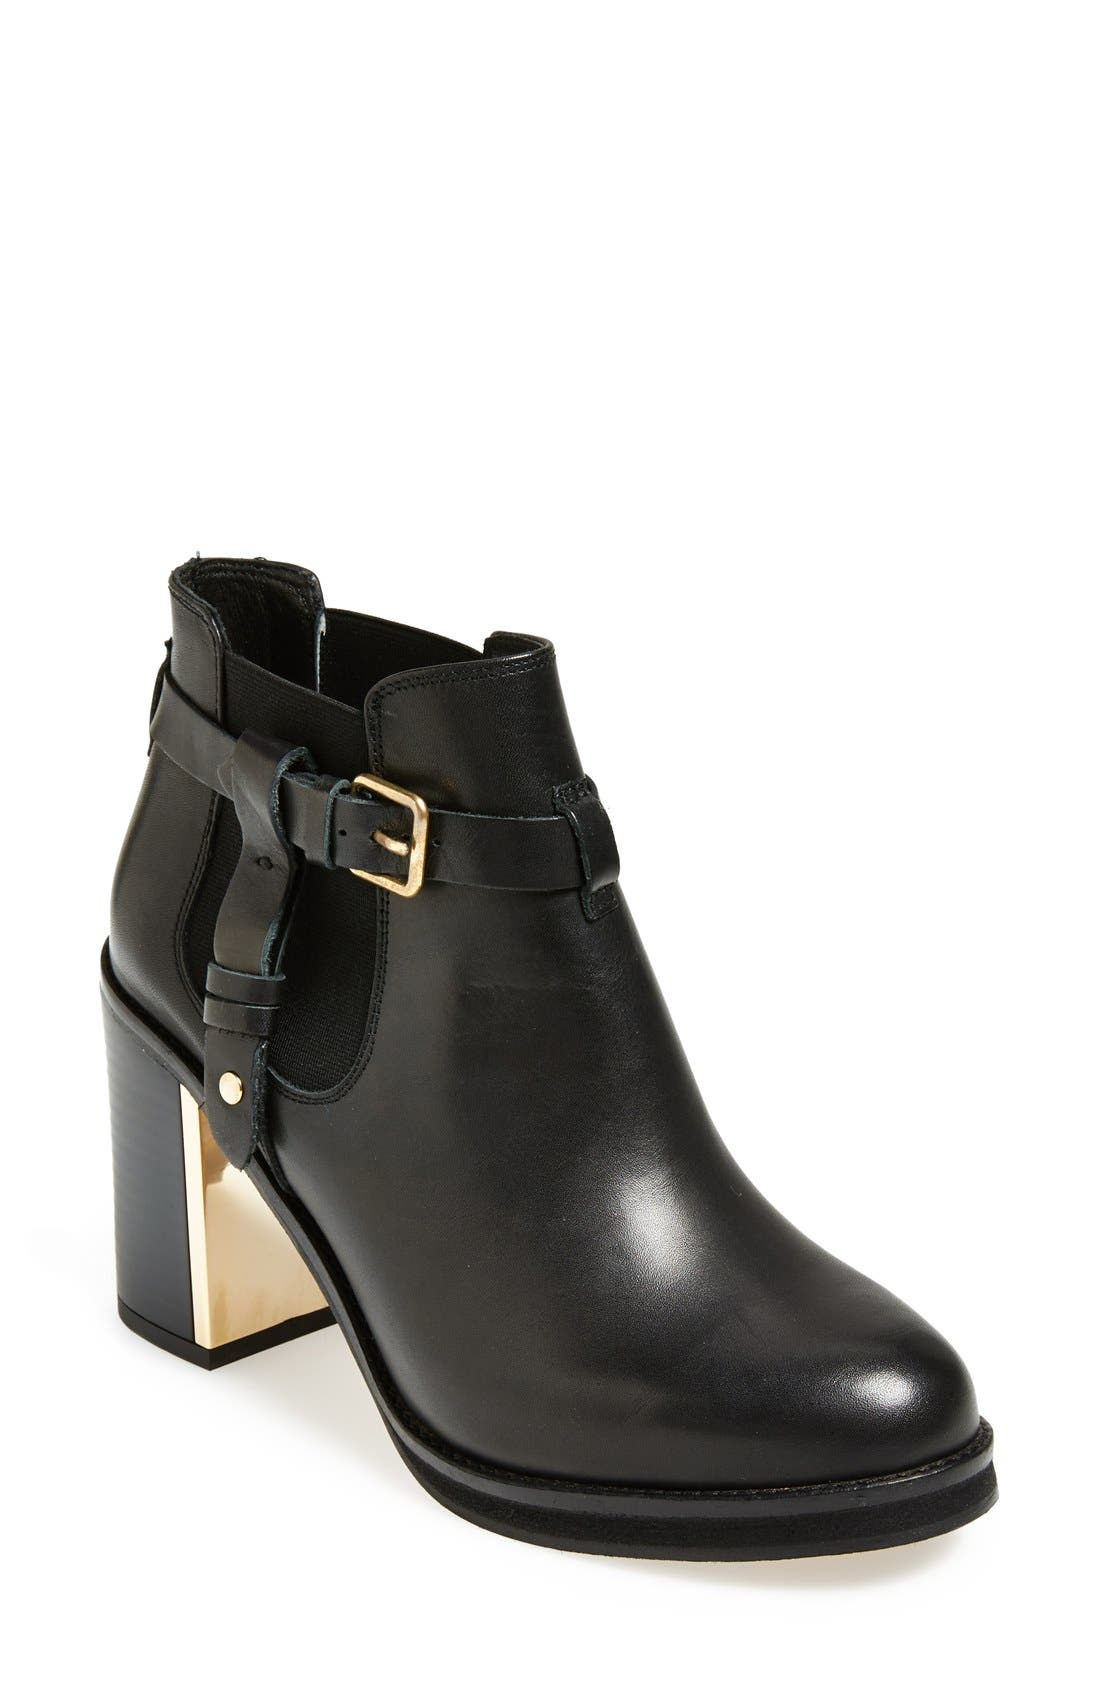 Alternate Image 1 Selected - Topshop 'Mine' Ankle Boot (Women)